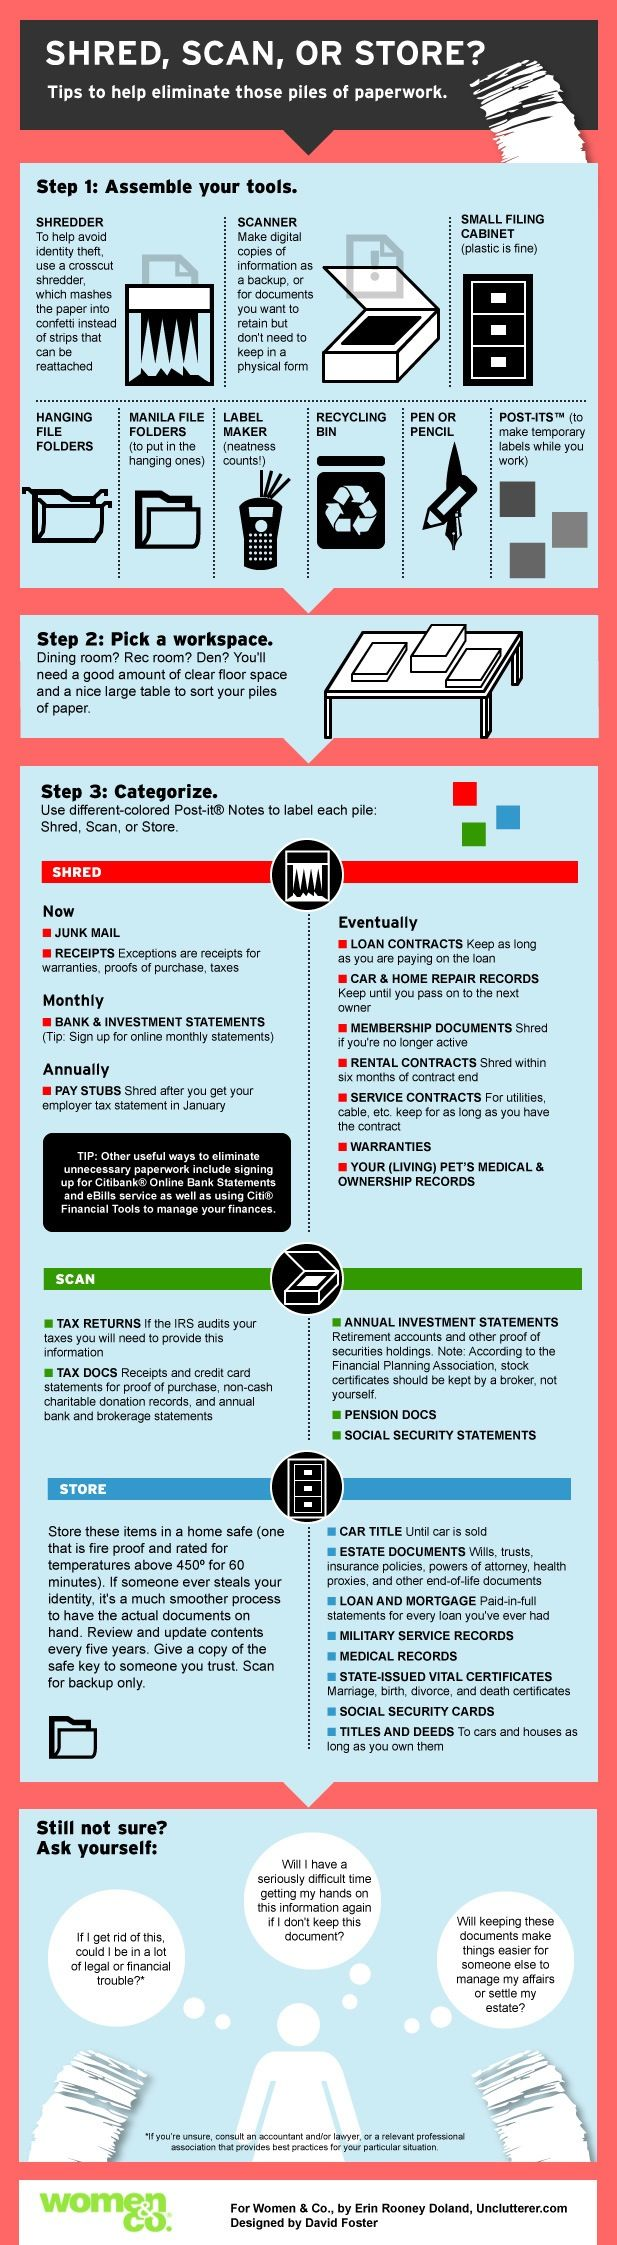 Getting organized paperwork to shred scan or store infographic women co